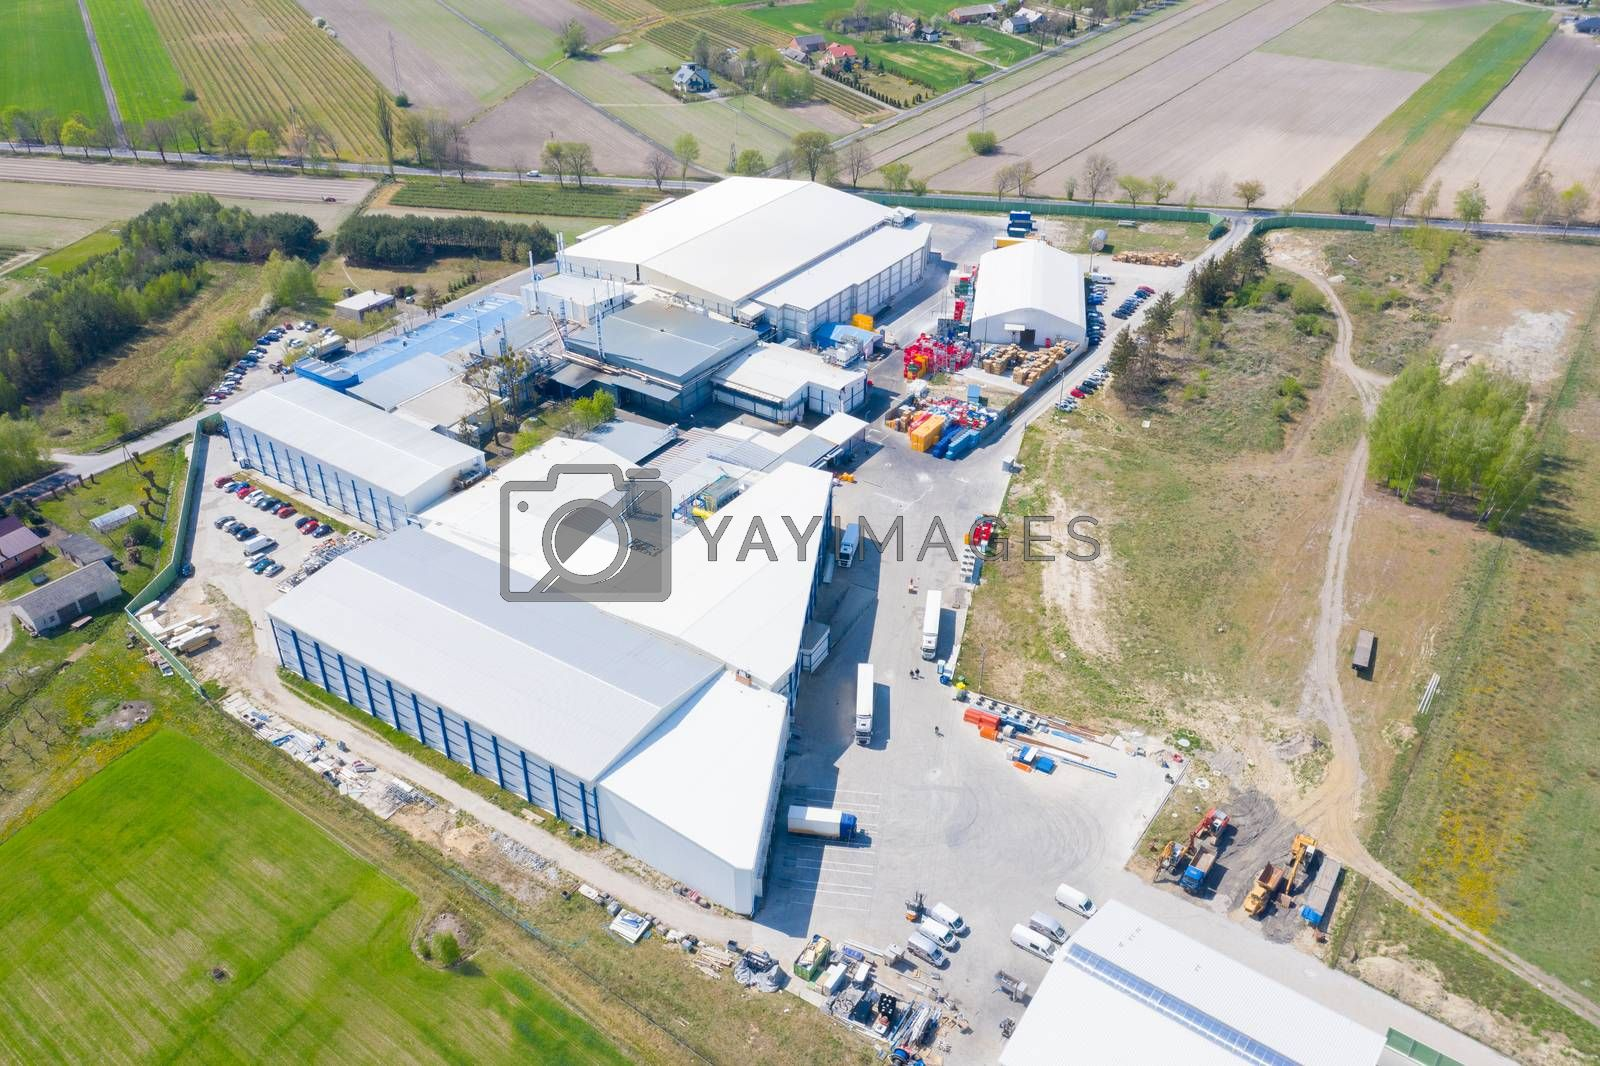 Aerial view of goods warehouse. Logistics center in industrial city zone from above. Aerial view of trucks loading at logistic center